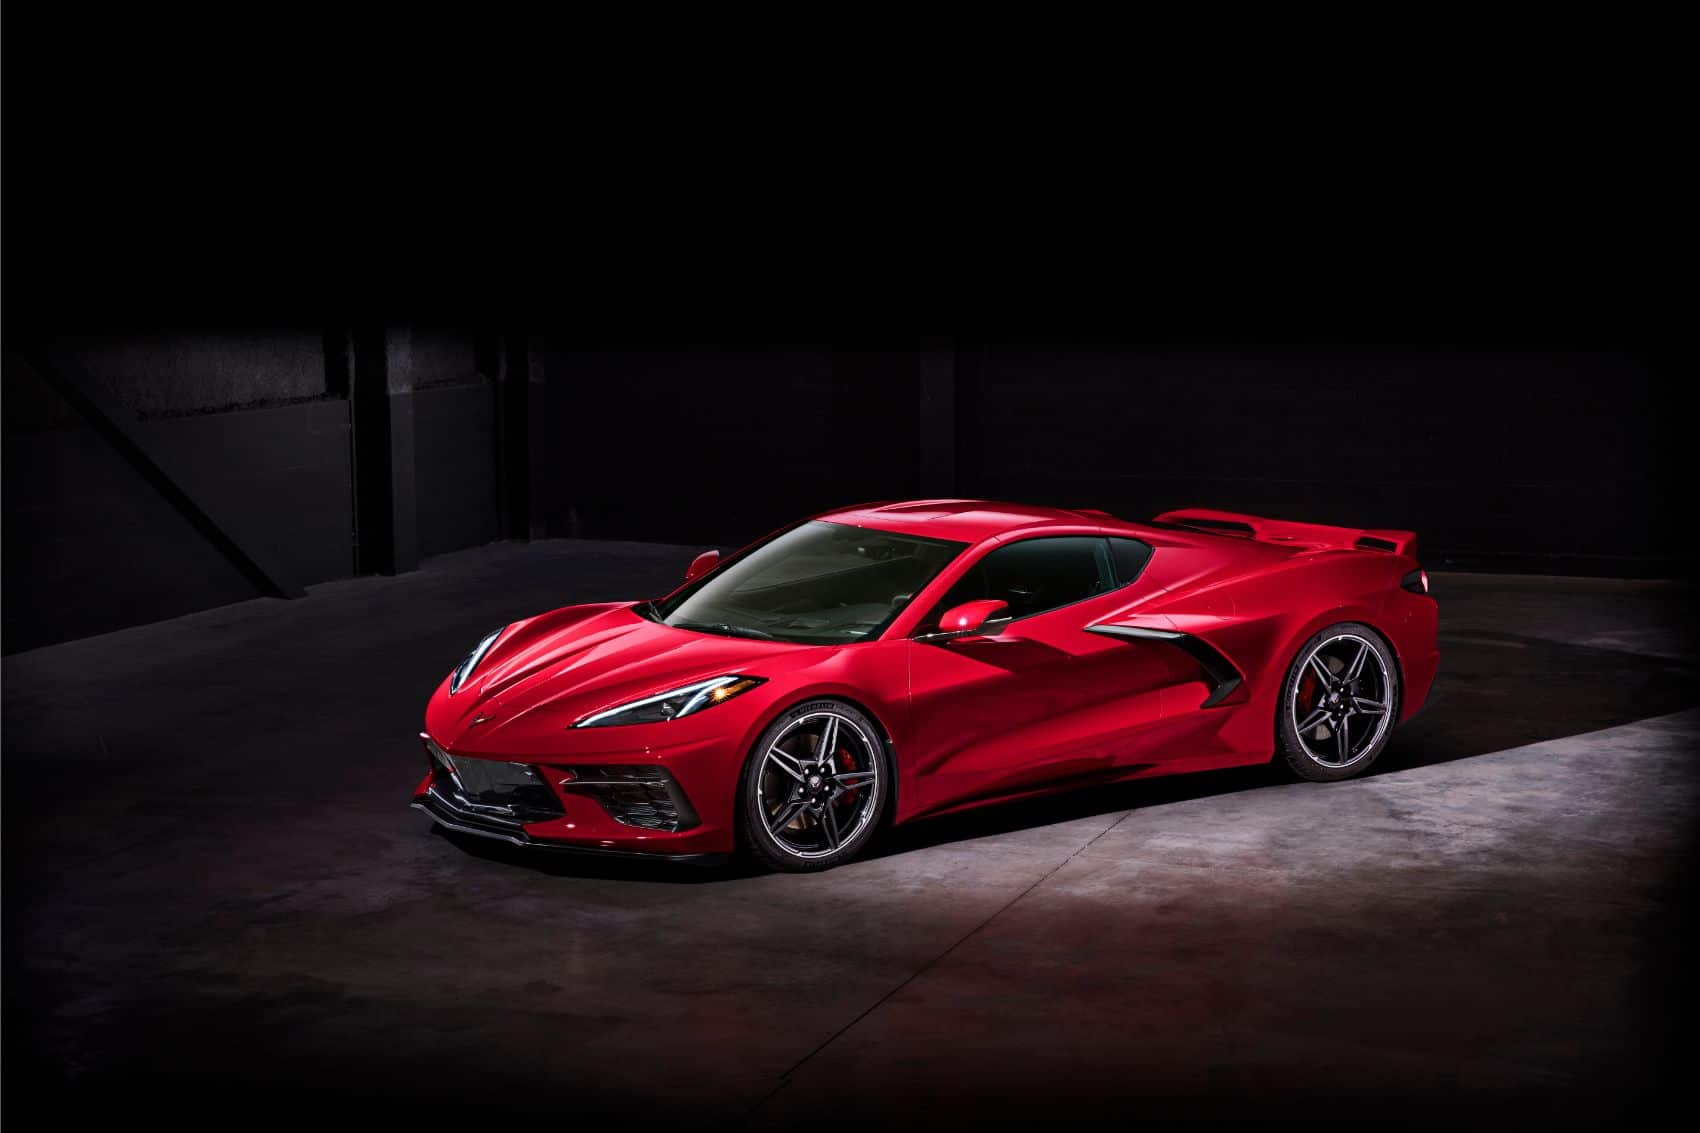 2020 Chevrolet Corvette Stingray 022